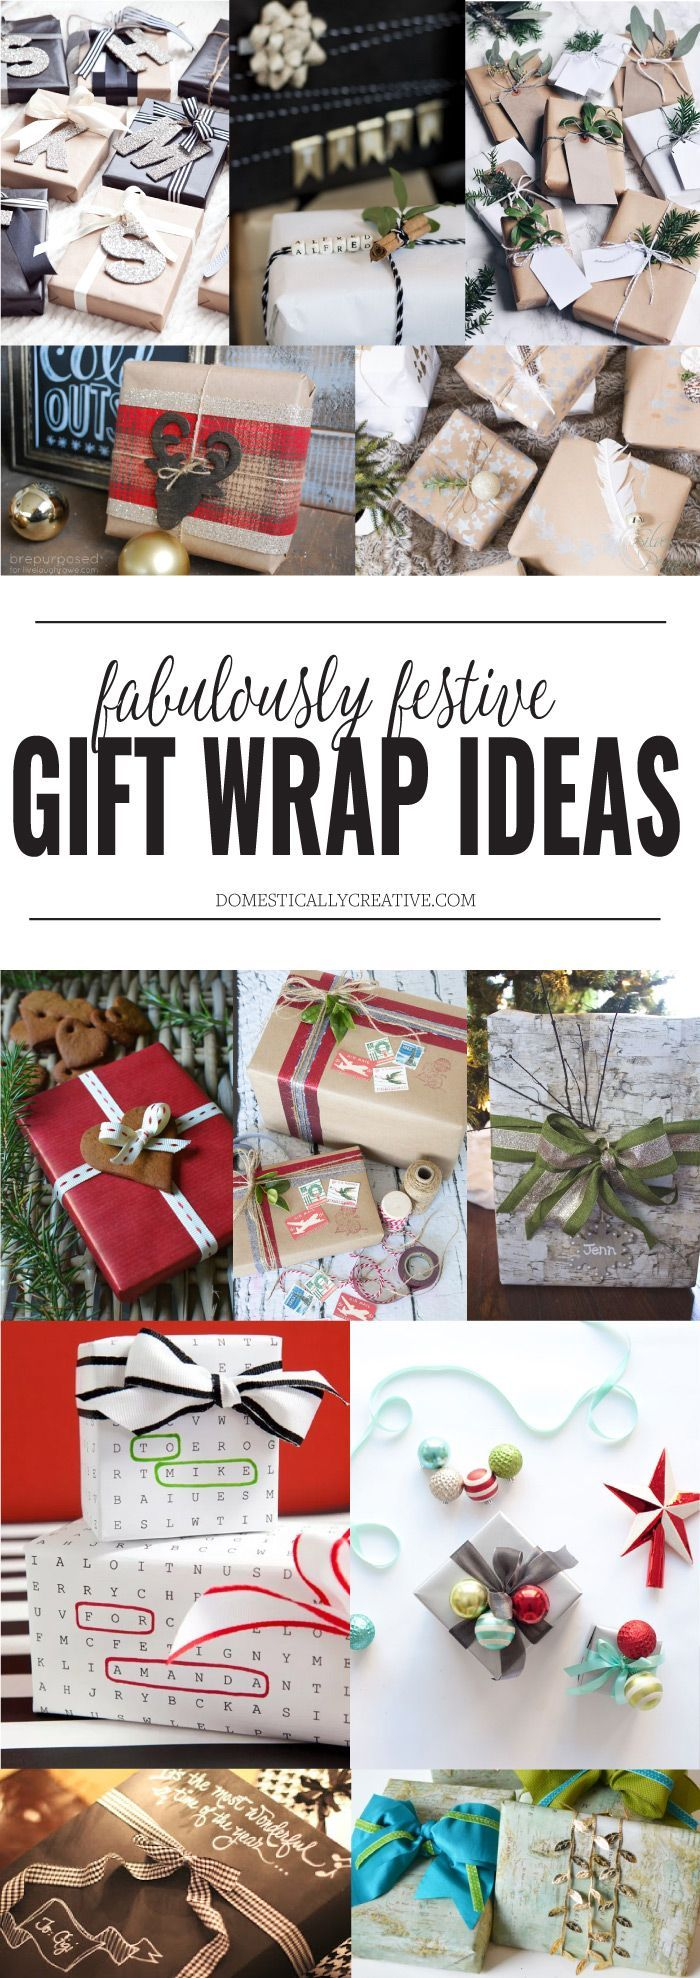 12 Fabulously Festive Gift Wrapping Ideas #christmasgiftwrap #christmasgift #giftwrap #christmaspresents